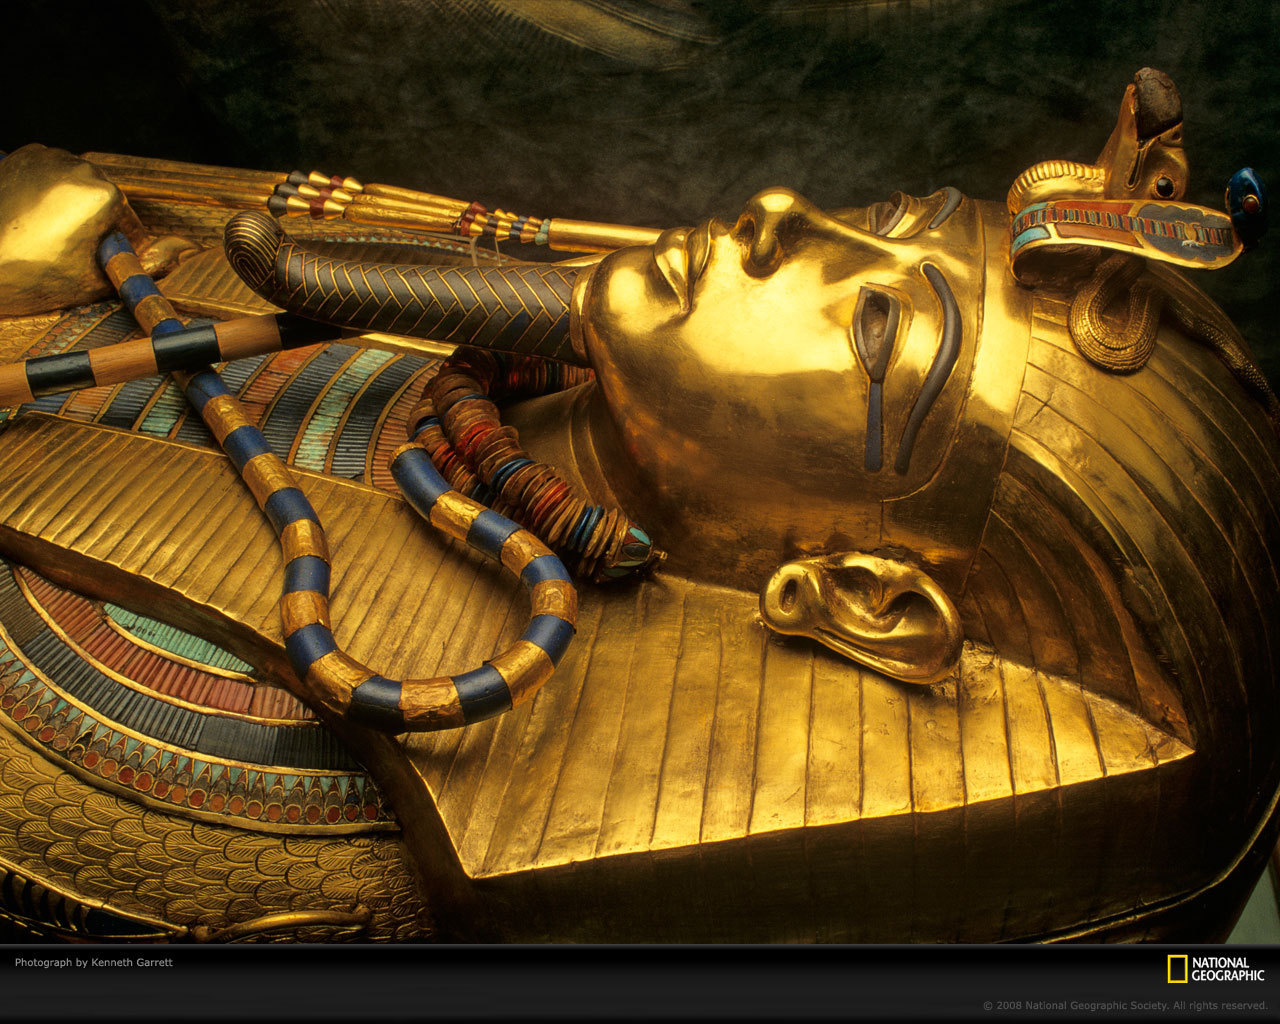 King Tutankhamen sarcophagus showing stretched ear lobe